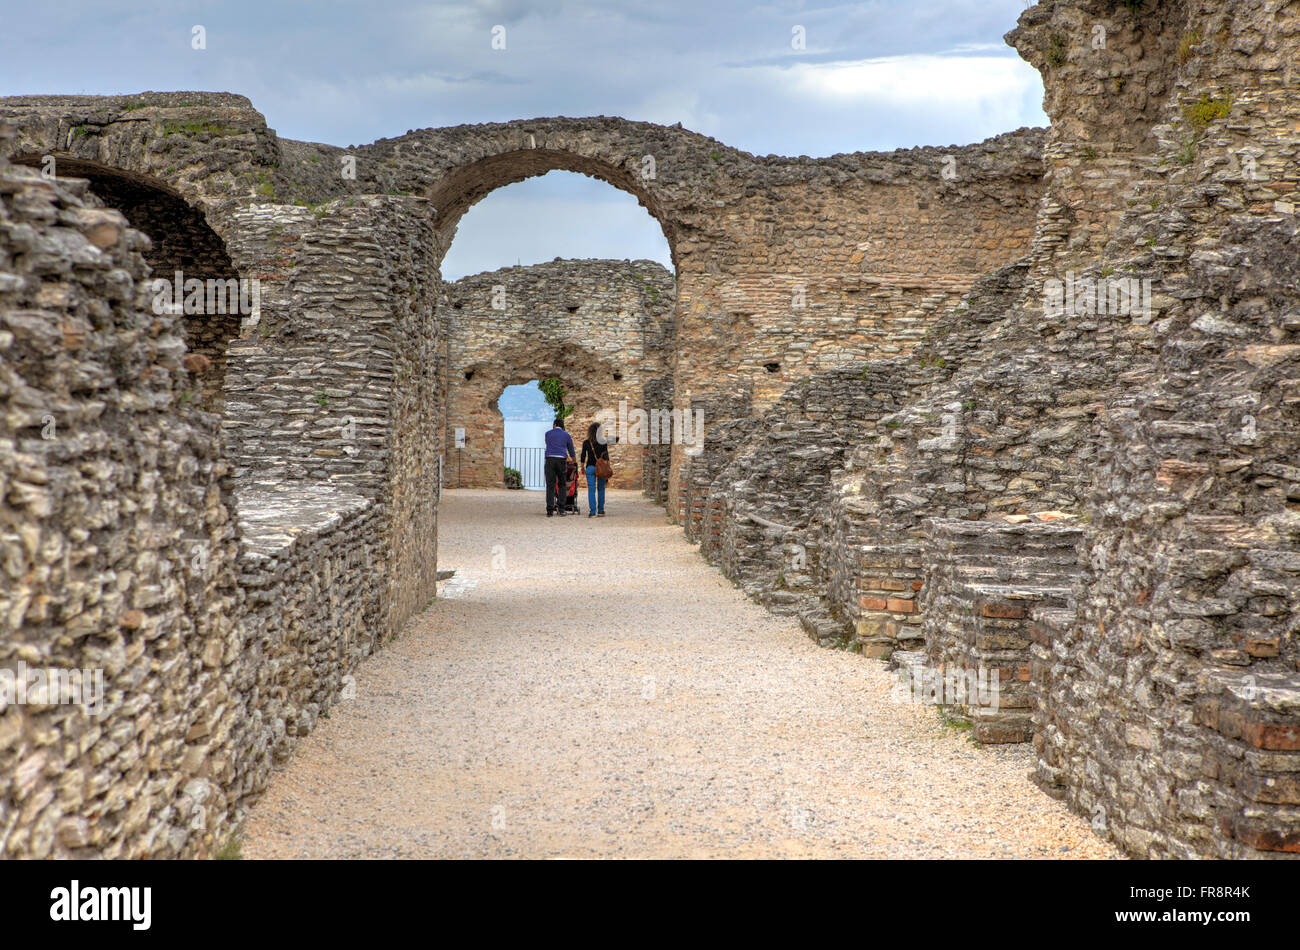 Remains of  Grottoes of Catullus (Grotte di Catullo) in Sirmione, Italy - Stock Image